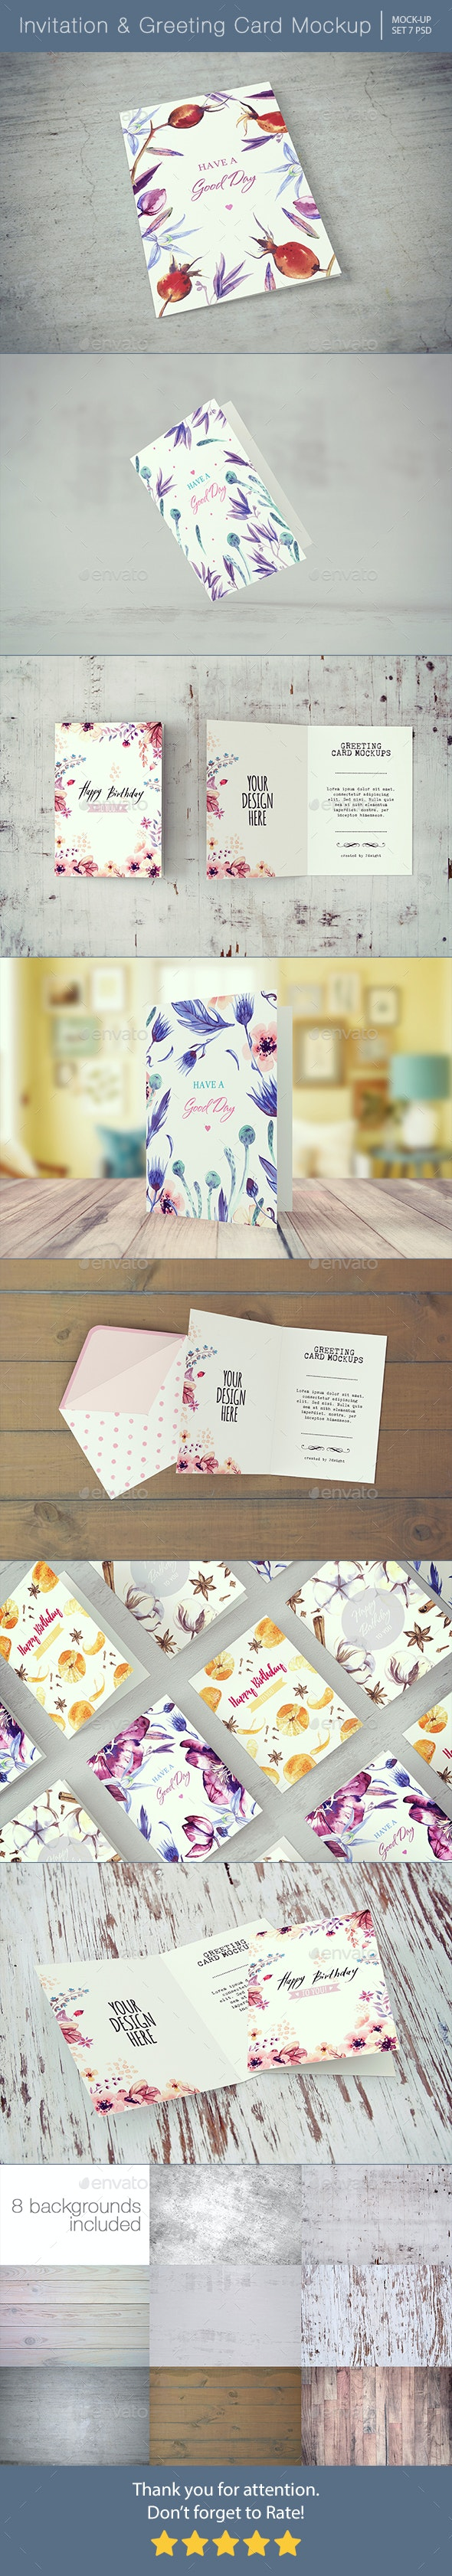 Invitation & Greeting Card Mockup - Miscellaneous Print